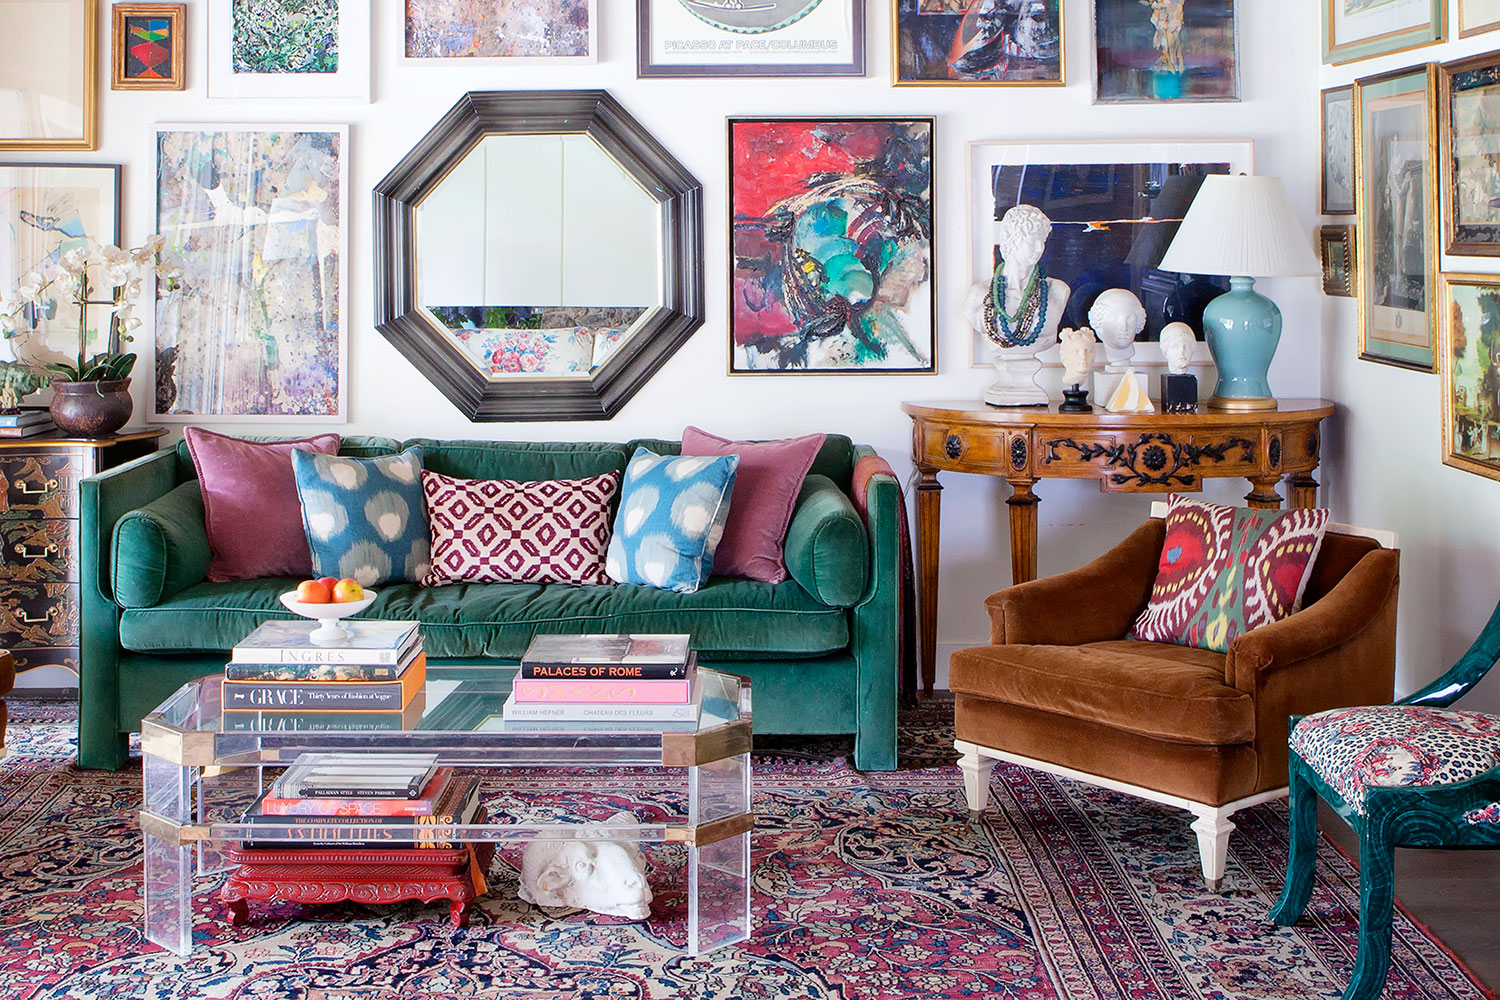 10 Decorating Trends To Watch Out For In 2018 Real Simple